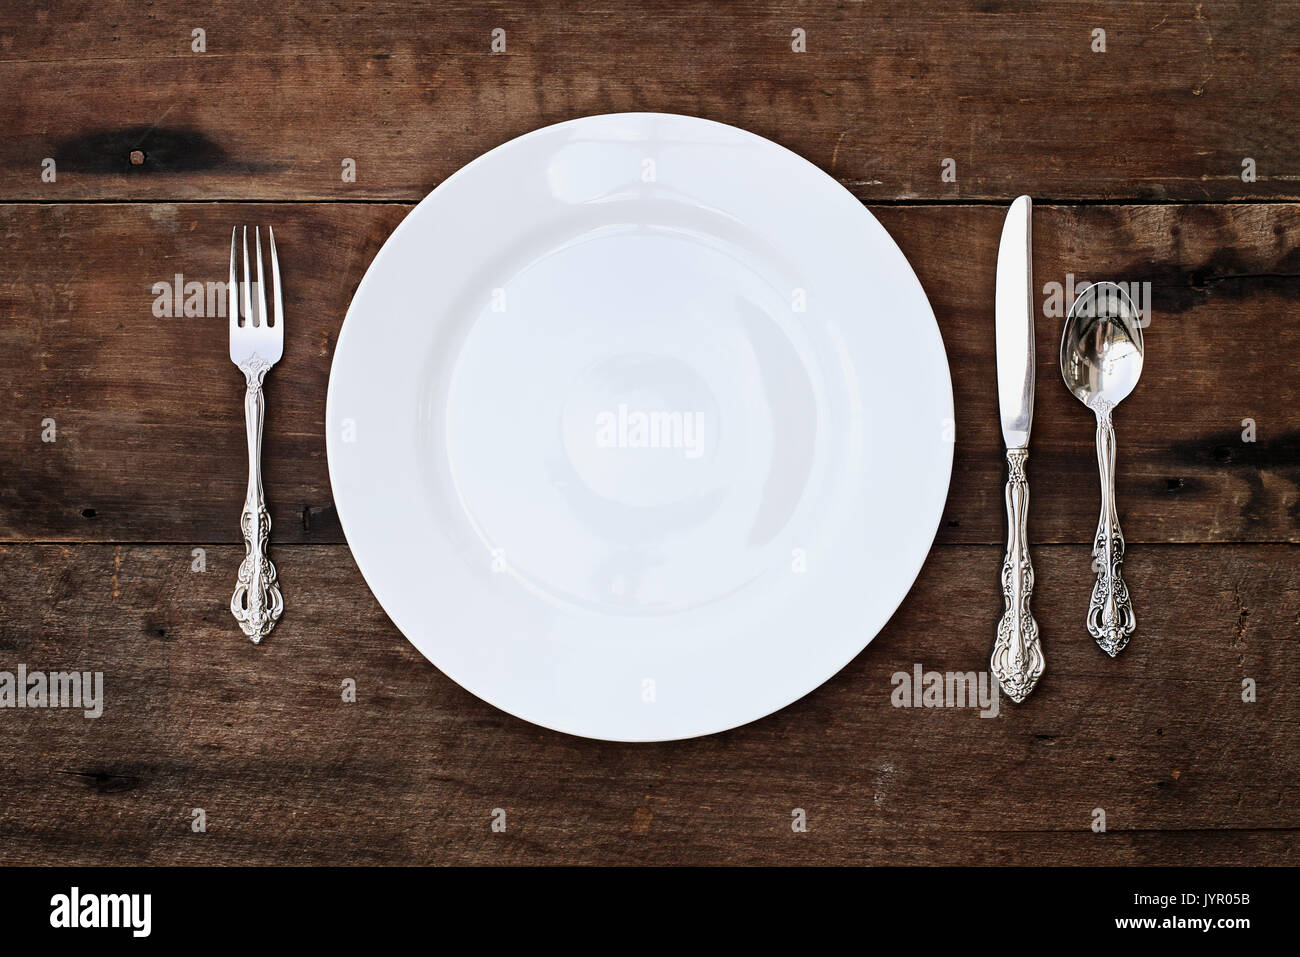 Place setting of a dining set of an empty plate with spoon fork and knife over a rustic old wooden background. Image shot from overhead. & Place setting of a dining set of an empty plate with spoon fork and ...